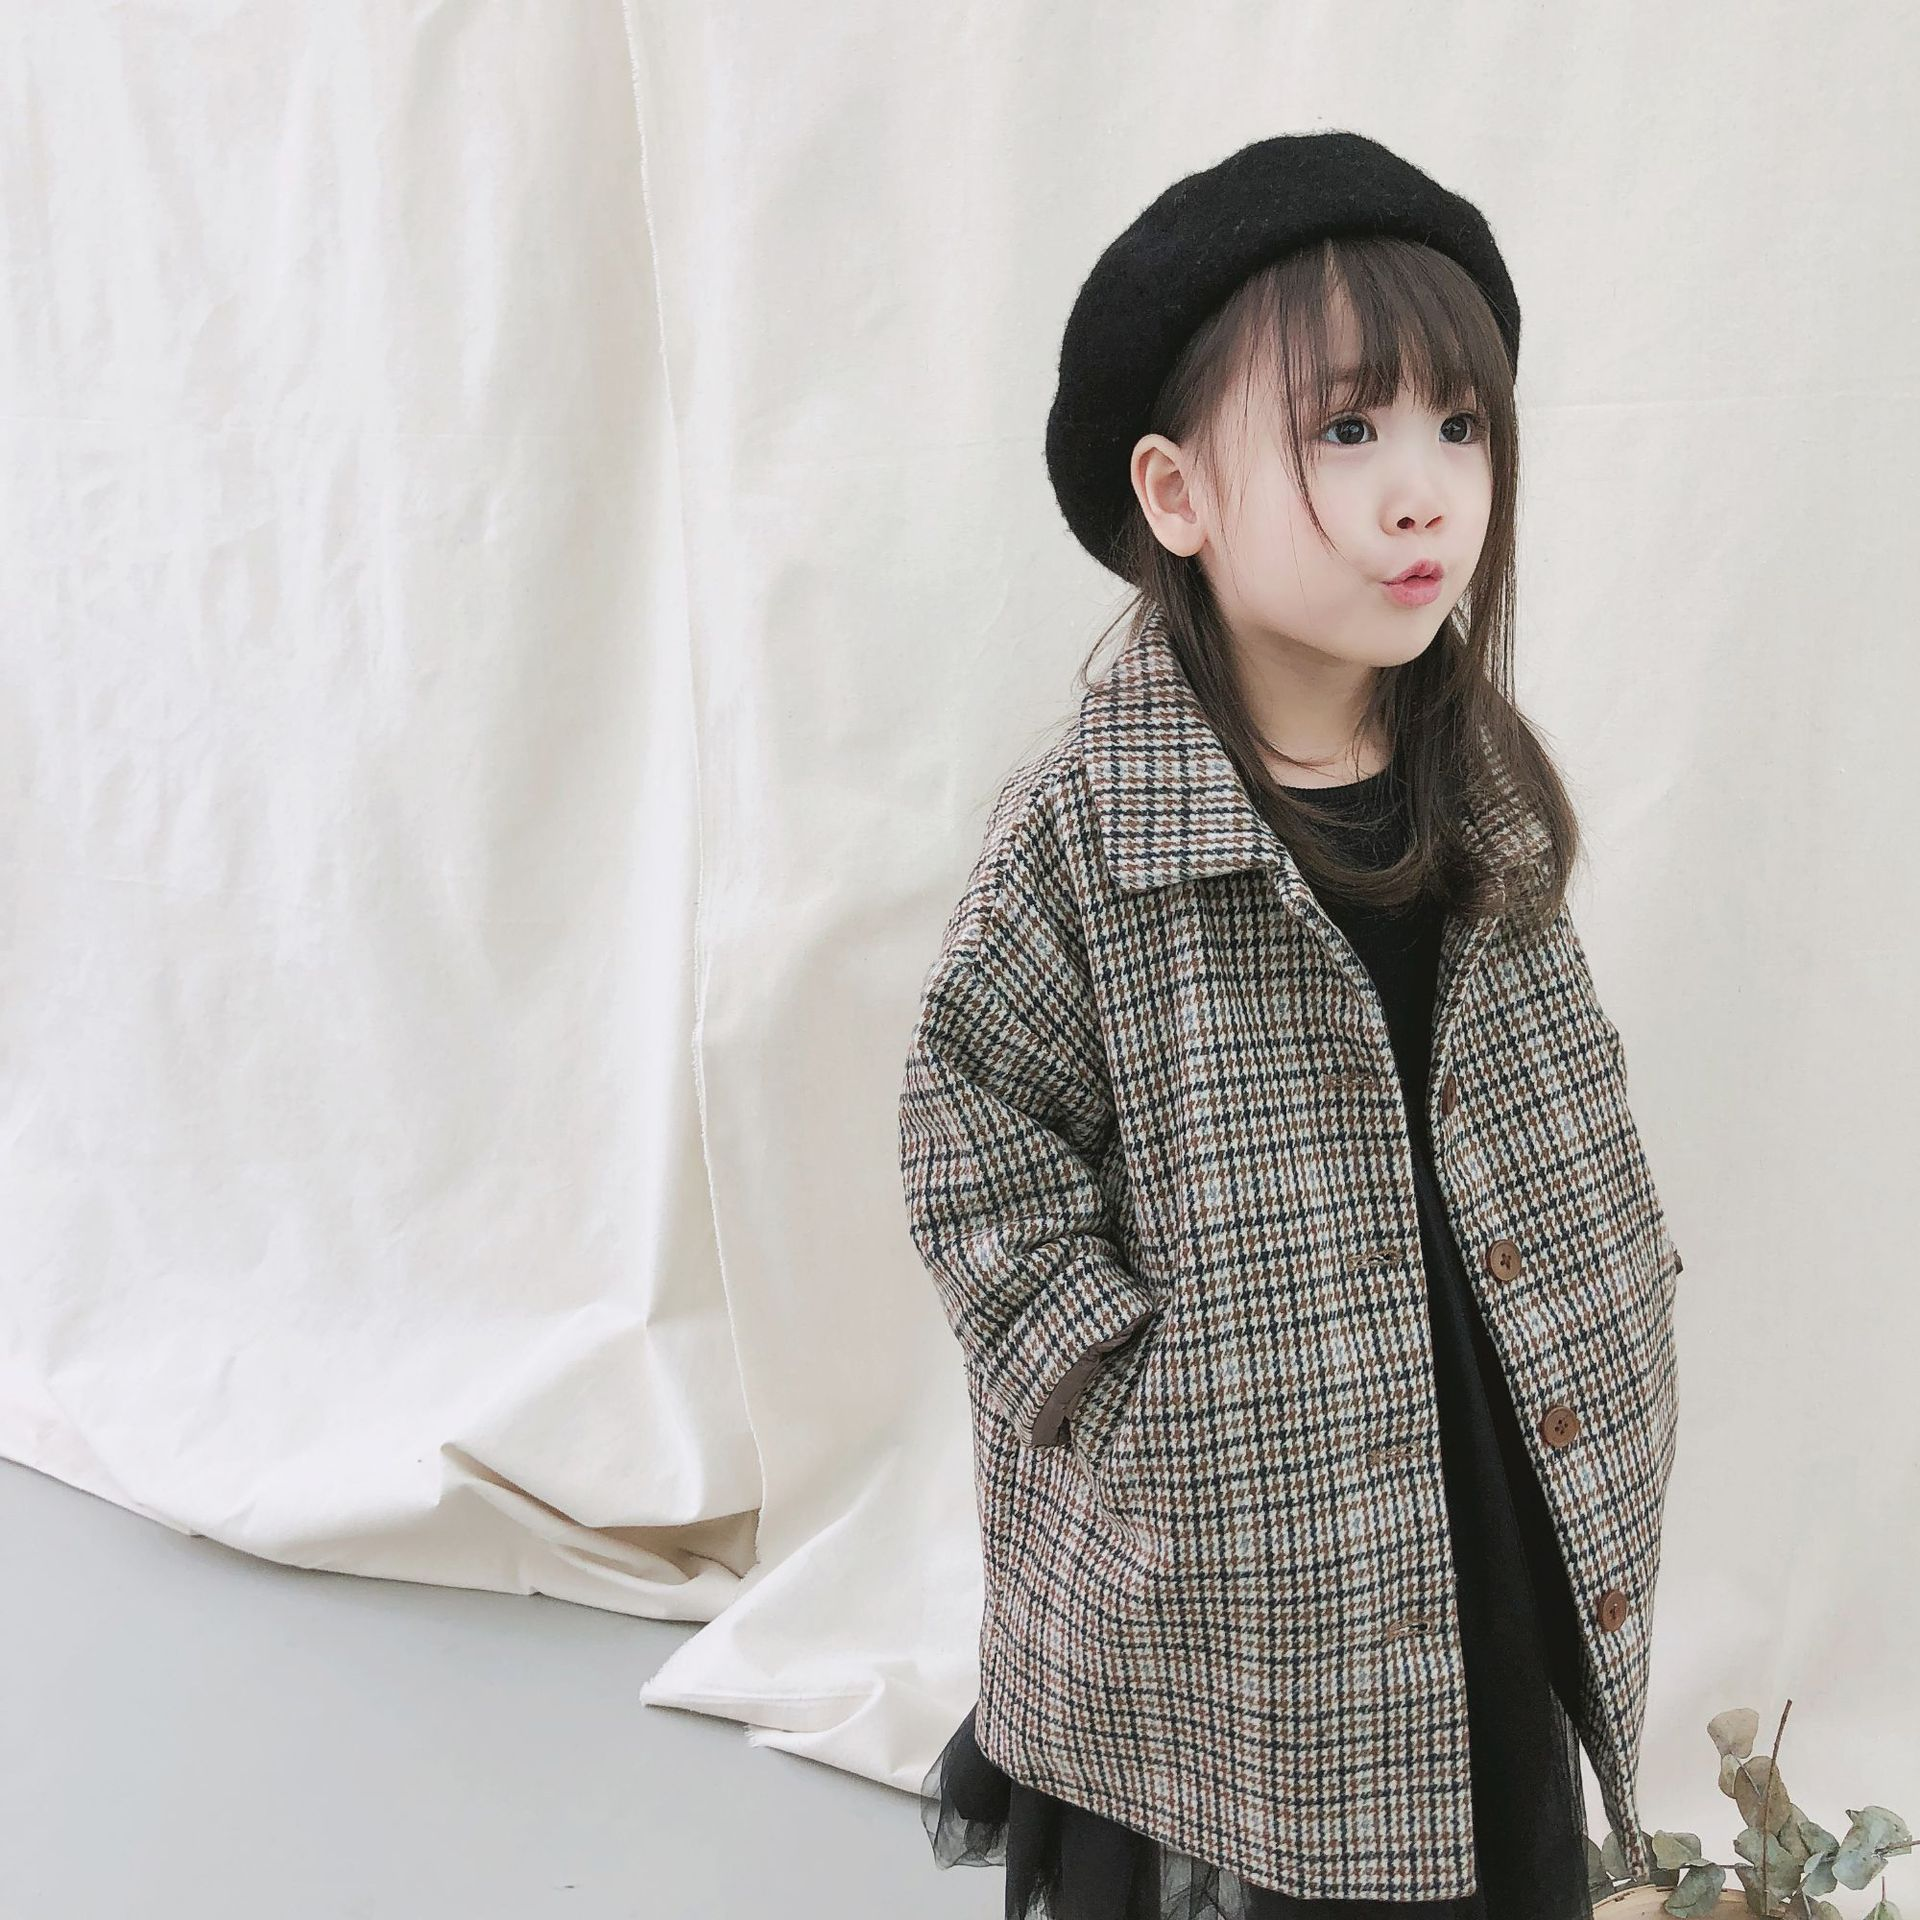 2018 Winter New Children's Wear, Korean Version, Plaid, Cotton Coat, fashion Children's Coat. thick outwear tartan plaid longline coat